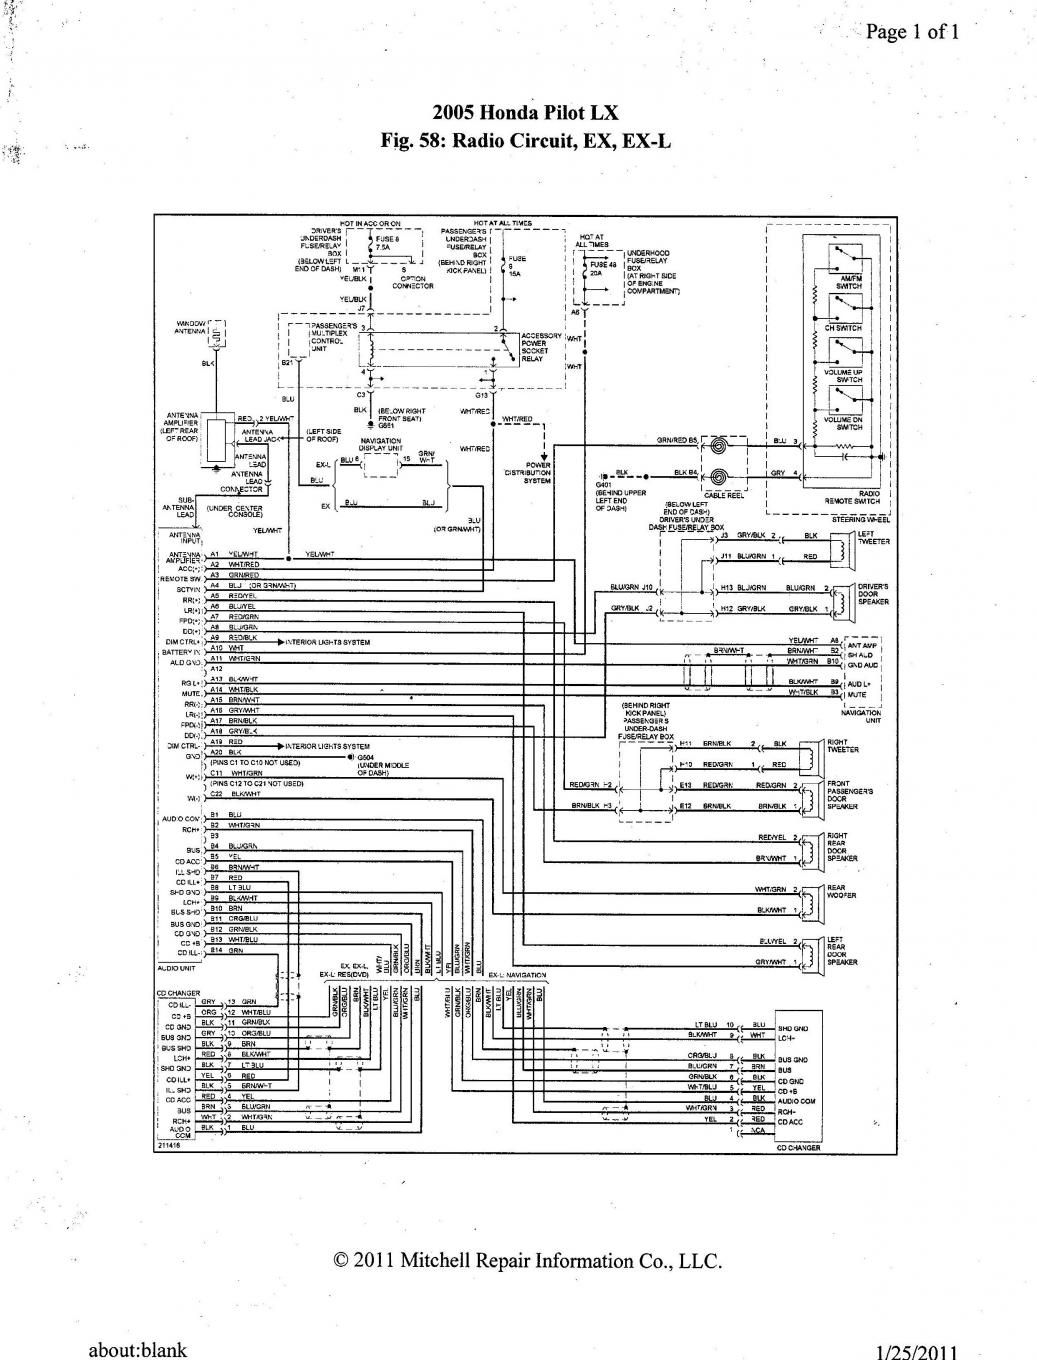 31d20cd85af26839e5c7abc2010f3259 2005 honda pilot ex l, ex radio wiring diagram 2005 honda pilot 2008 Honda Pilot Engine Diagram at bayanpartner.co